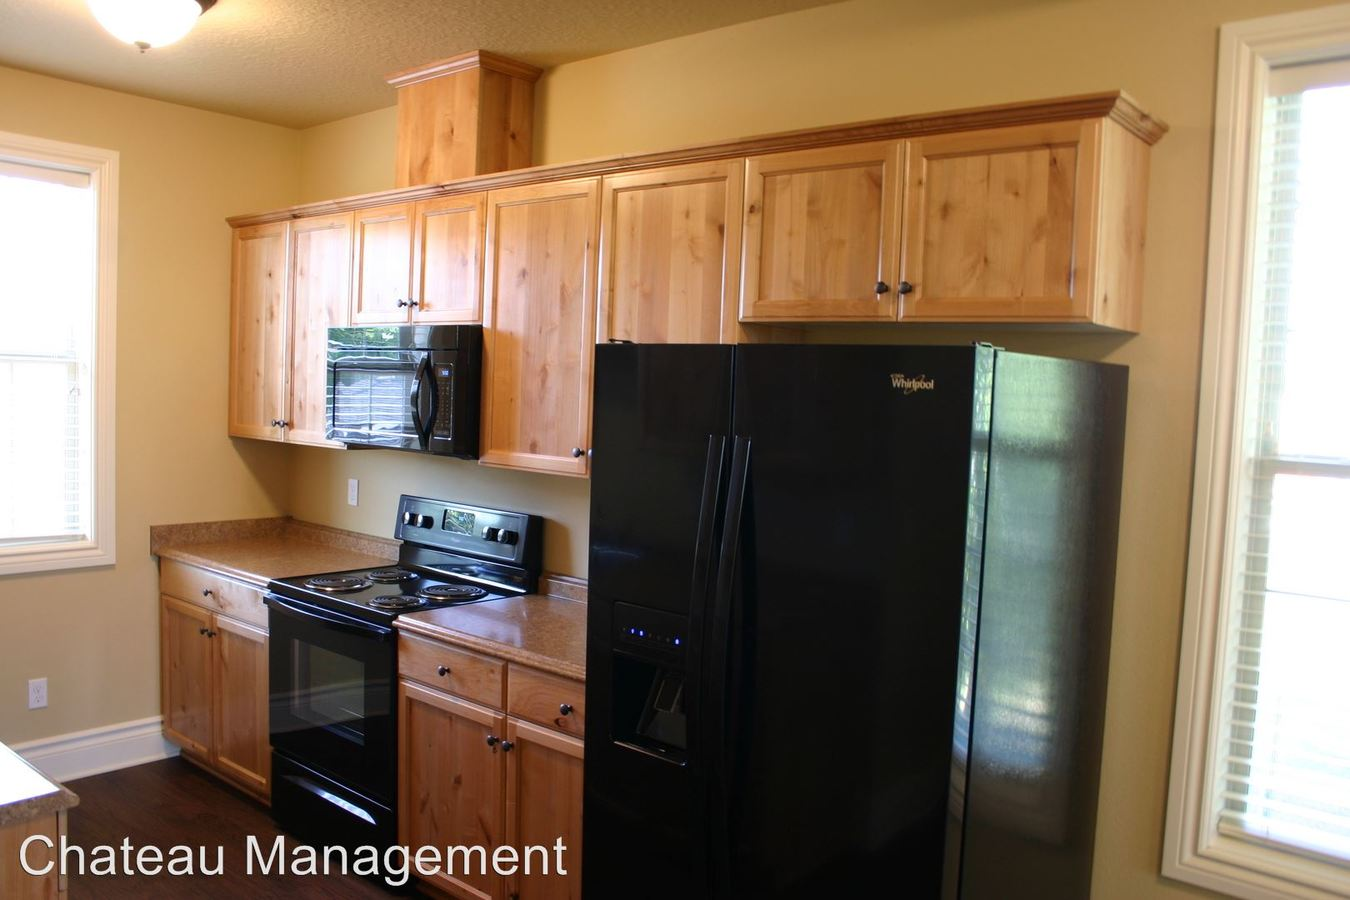 3 Bedrooms 2 Bathrooms Apartment for rent at 2161 Nw Janssen St. in Corvallis, OR